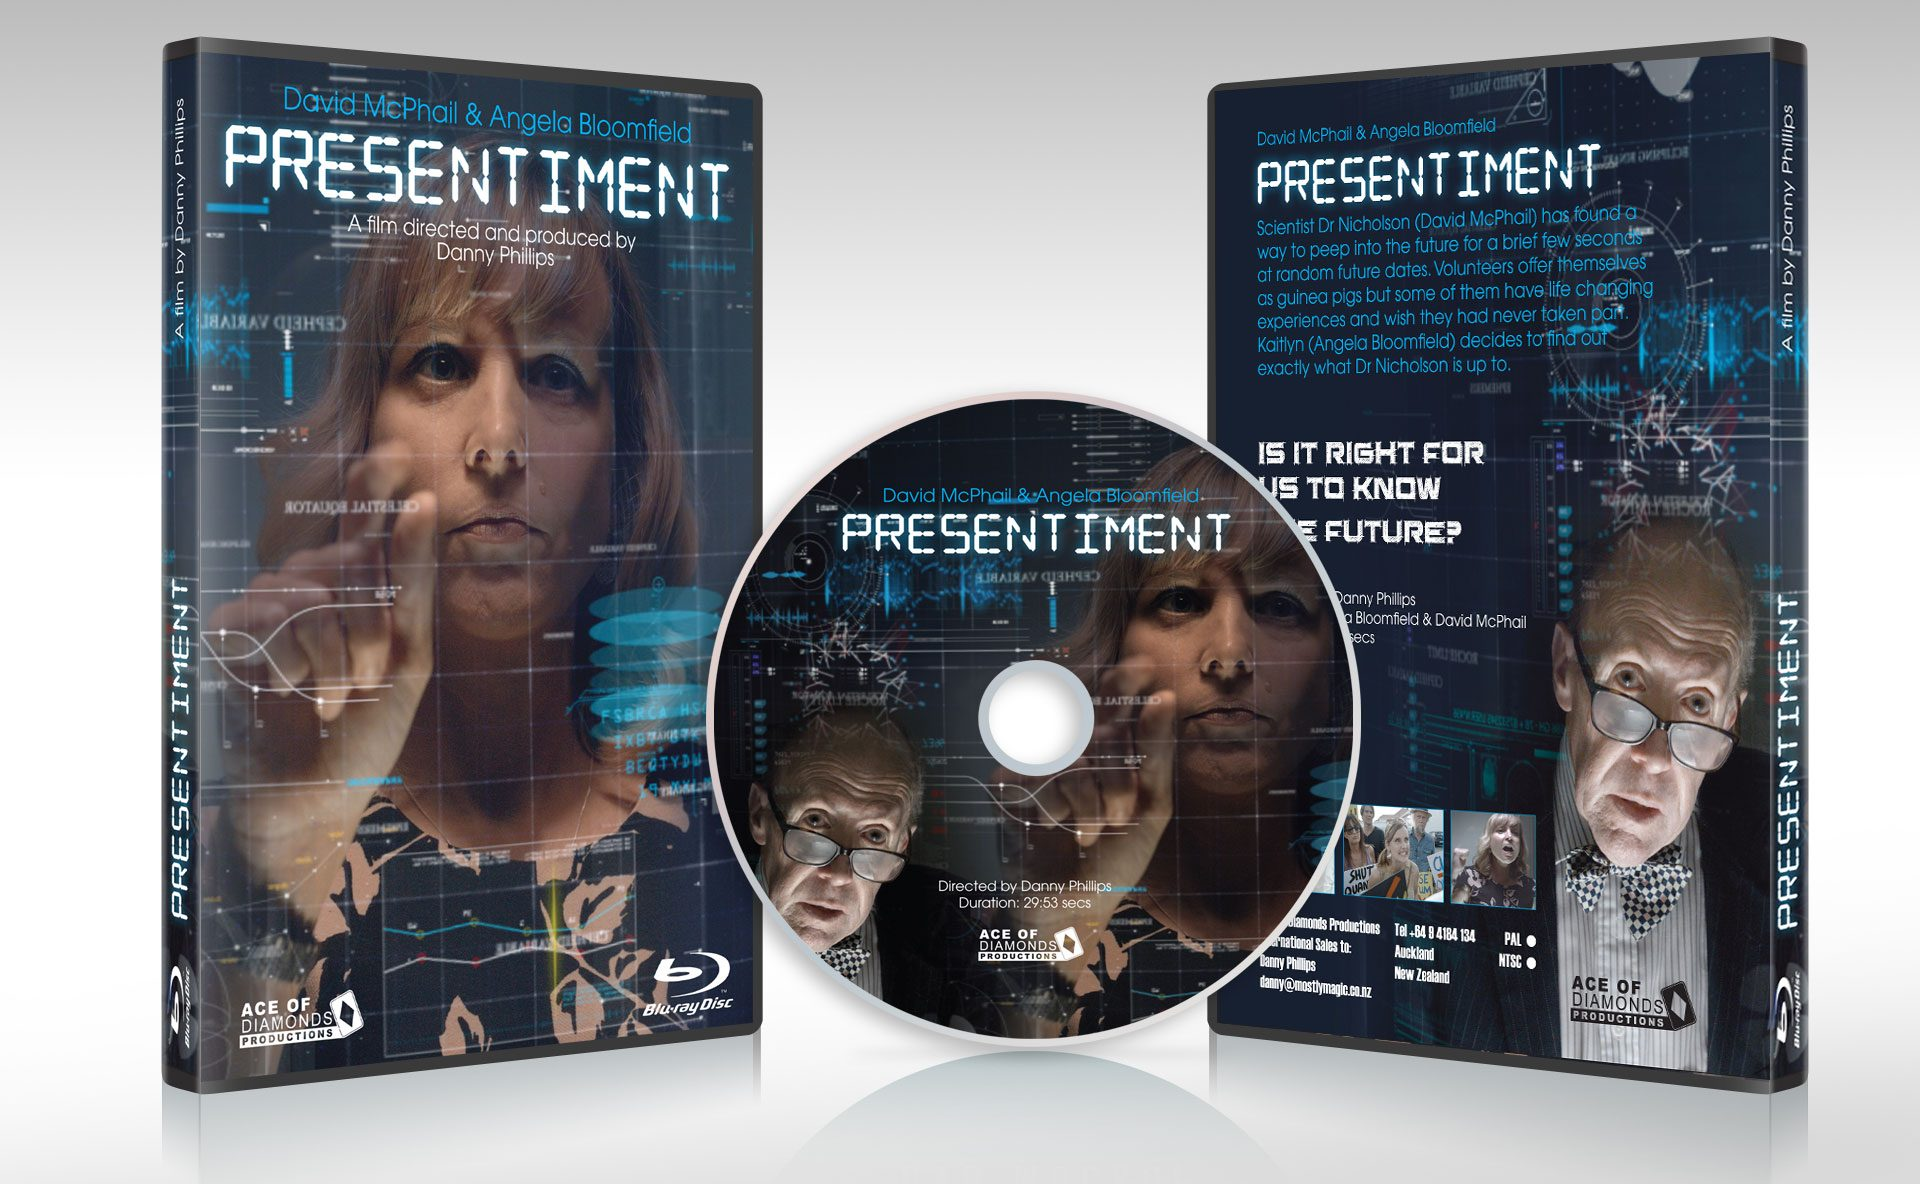 Presentiment DVD cover design by Nugget Design